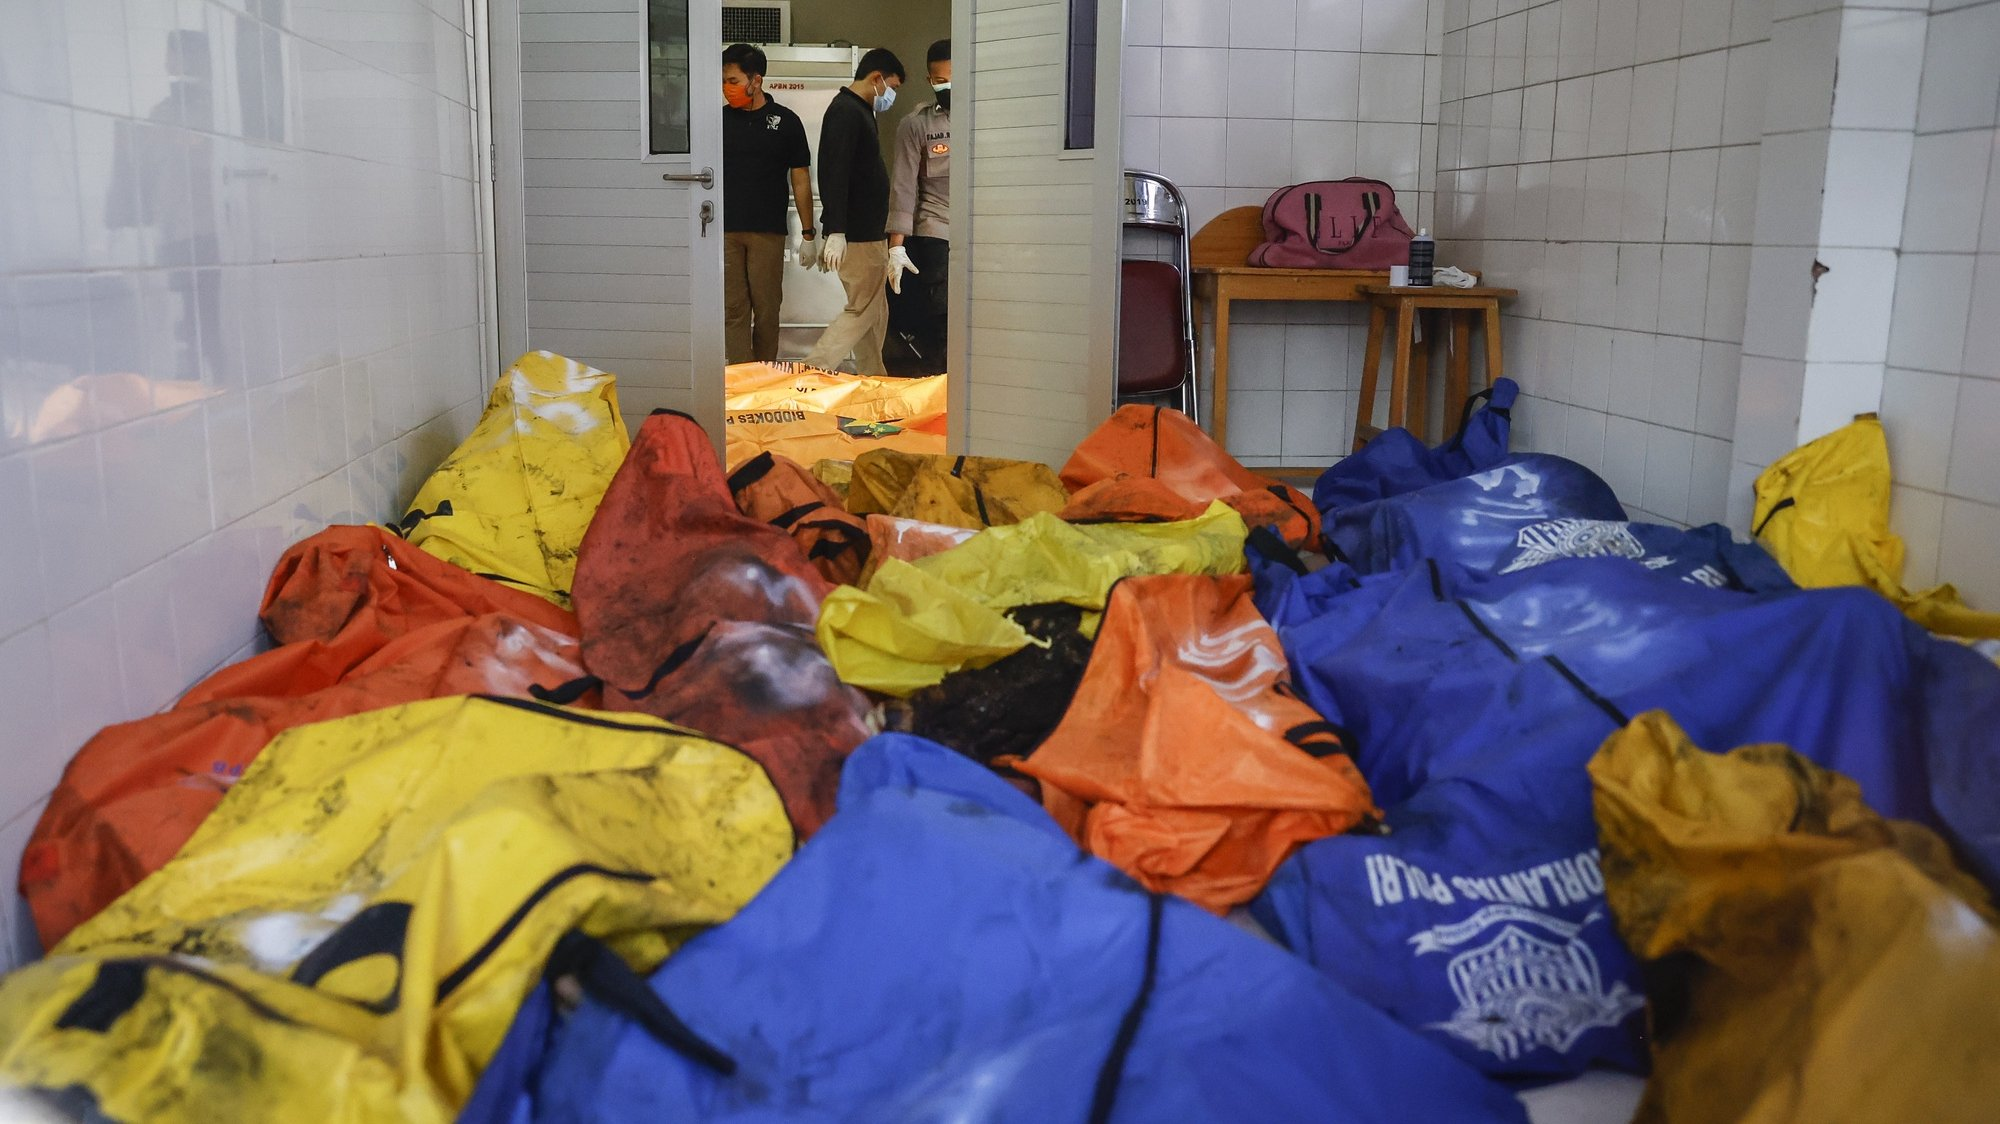 epa09454476 Disaster Victims Identification (DVI) police officers inspect body bags in the aftermath of a prison fire, at a hospital in Tangerang, Banten, Indonesia, 08 September 2021. A fire broke out in a prison in Tangerang killing at least 41 people and injuring dozens.  EPA/MAST IRHAM